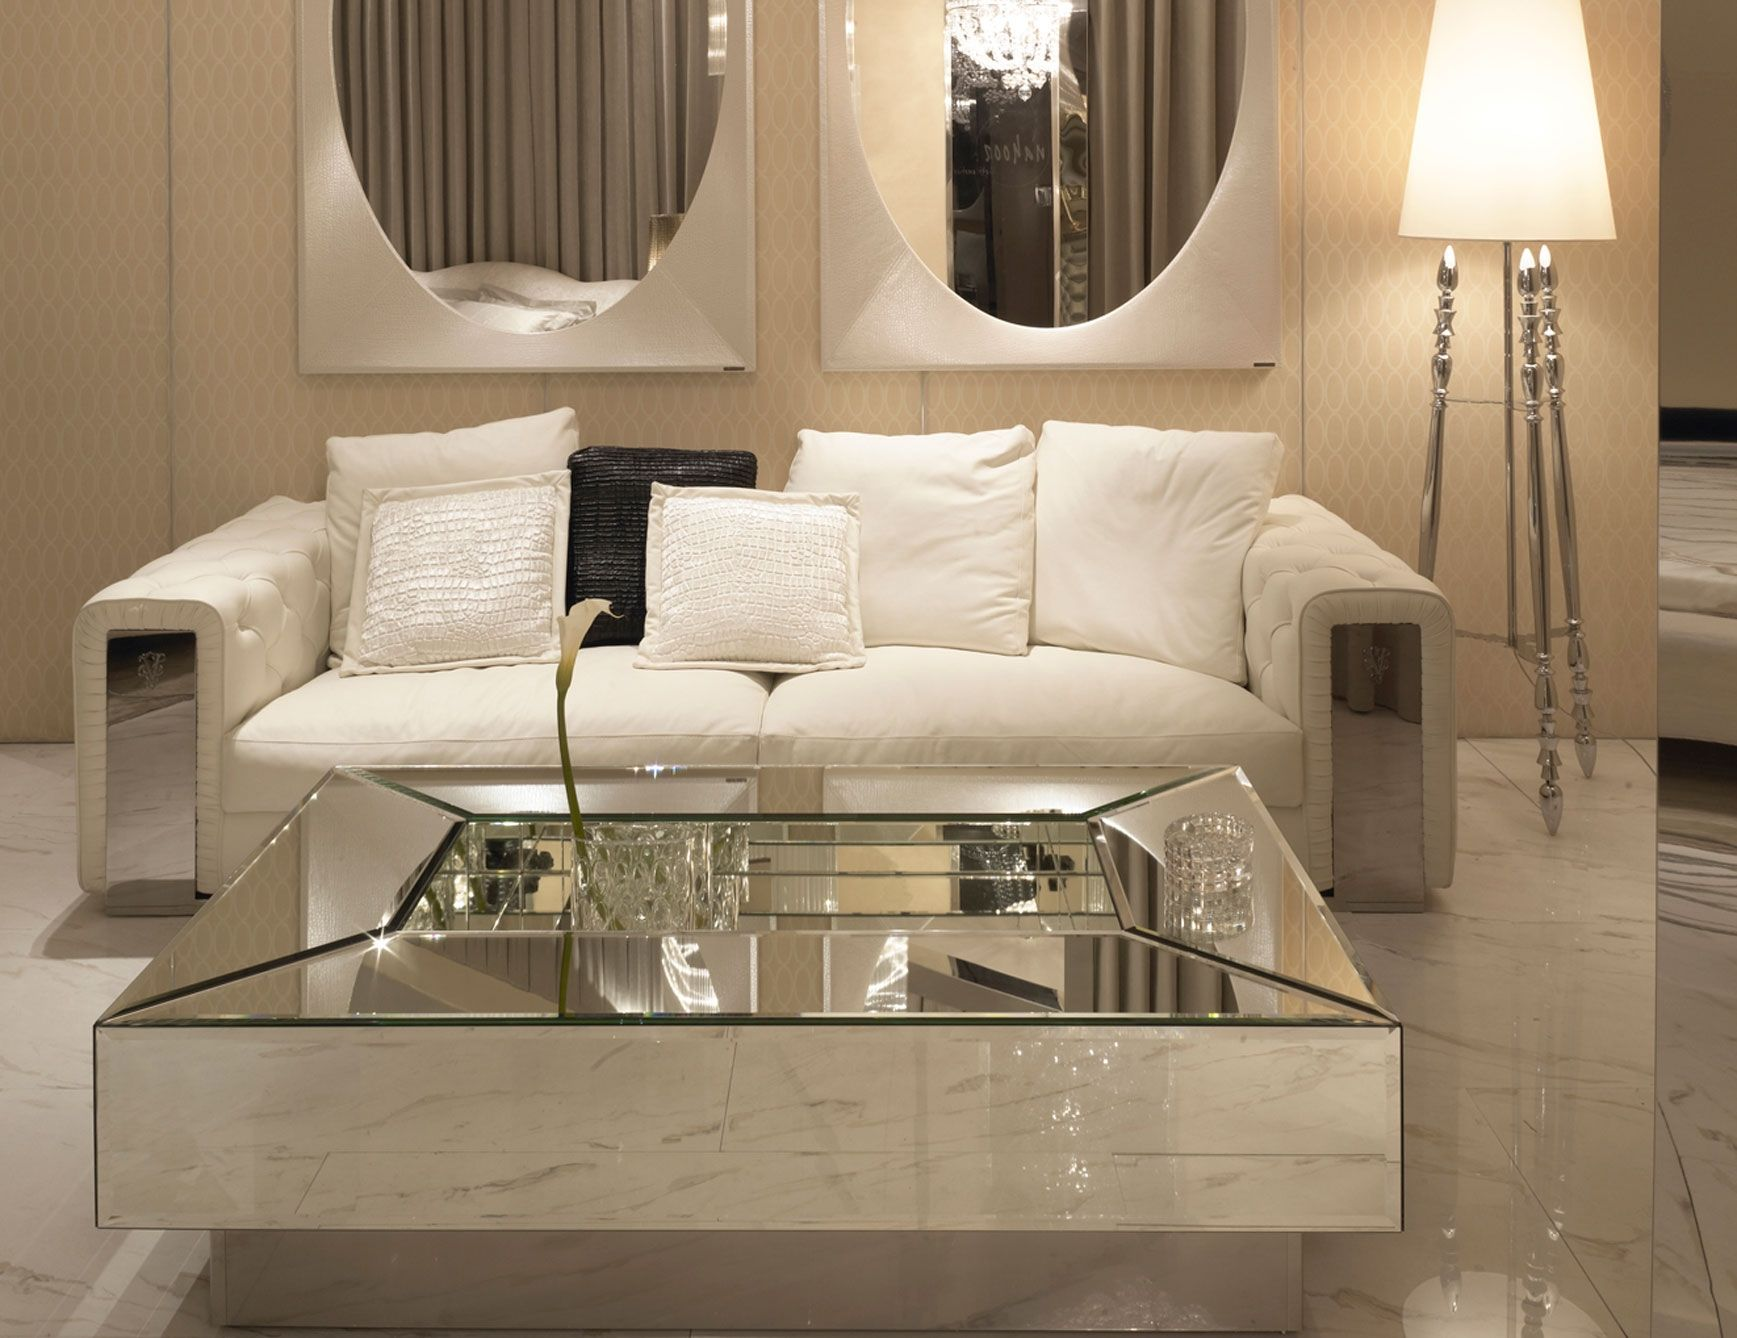 Mesmerizing Mirrored Coffee Table With Glass And Wood Combined